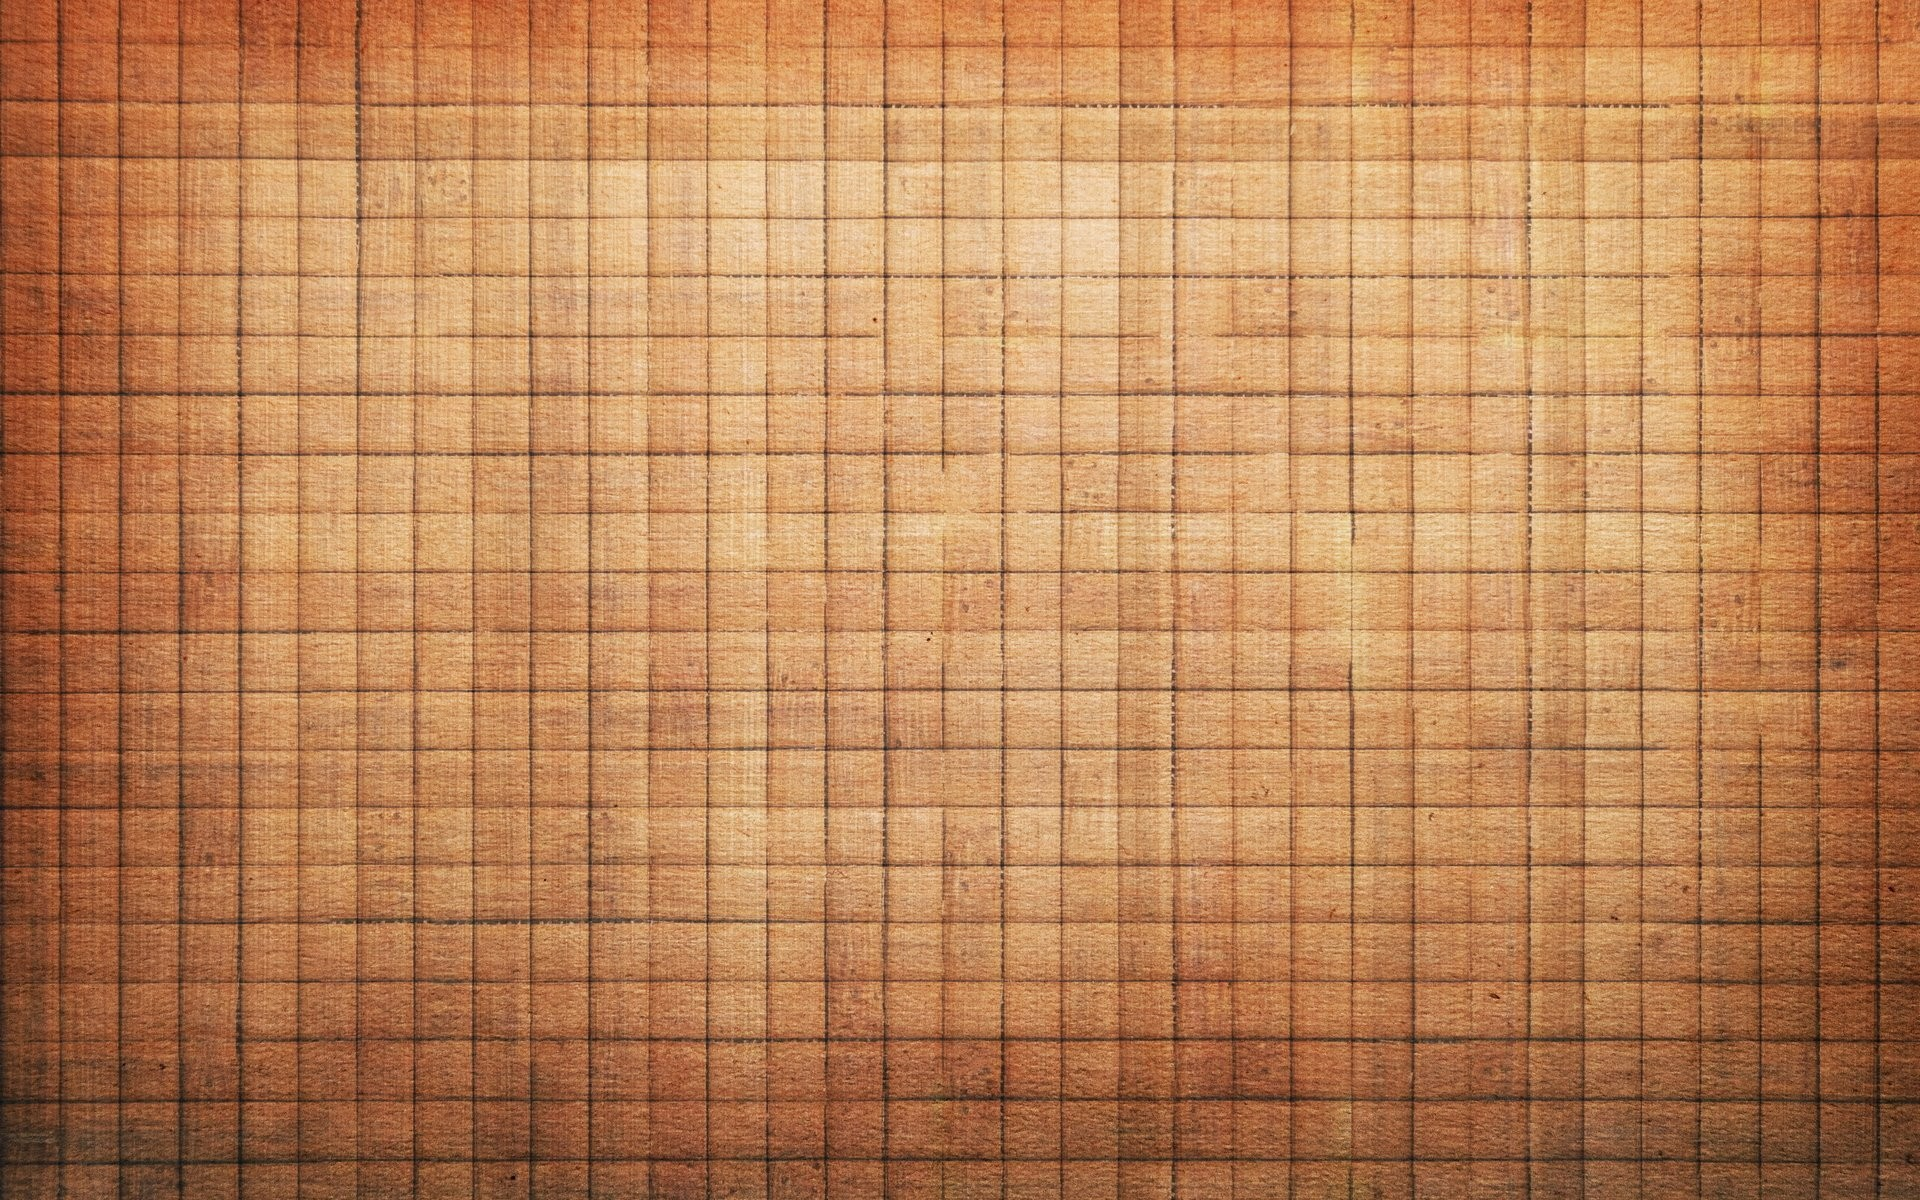 Leather Wallpaper Iphone X Light Brown Background 183 ① Download Free Full Hd Wallpapers